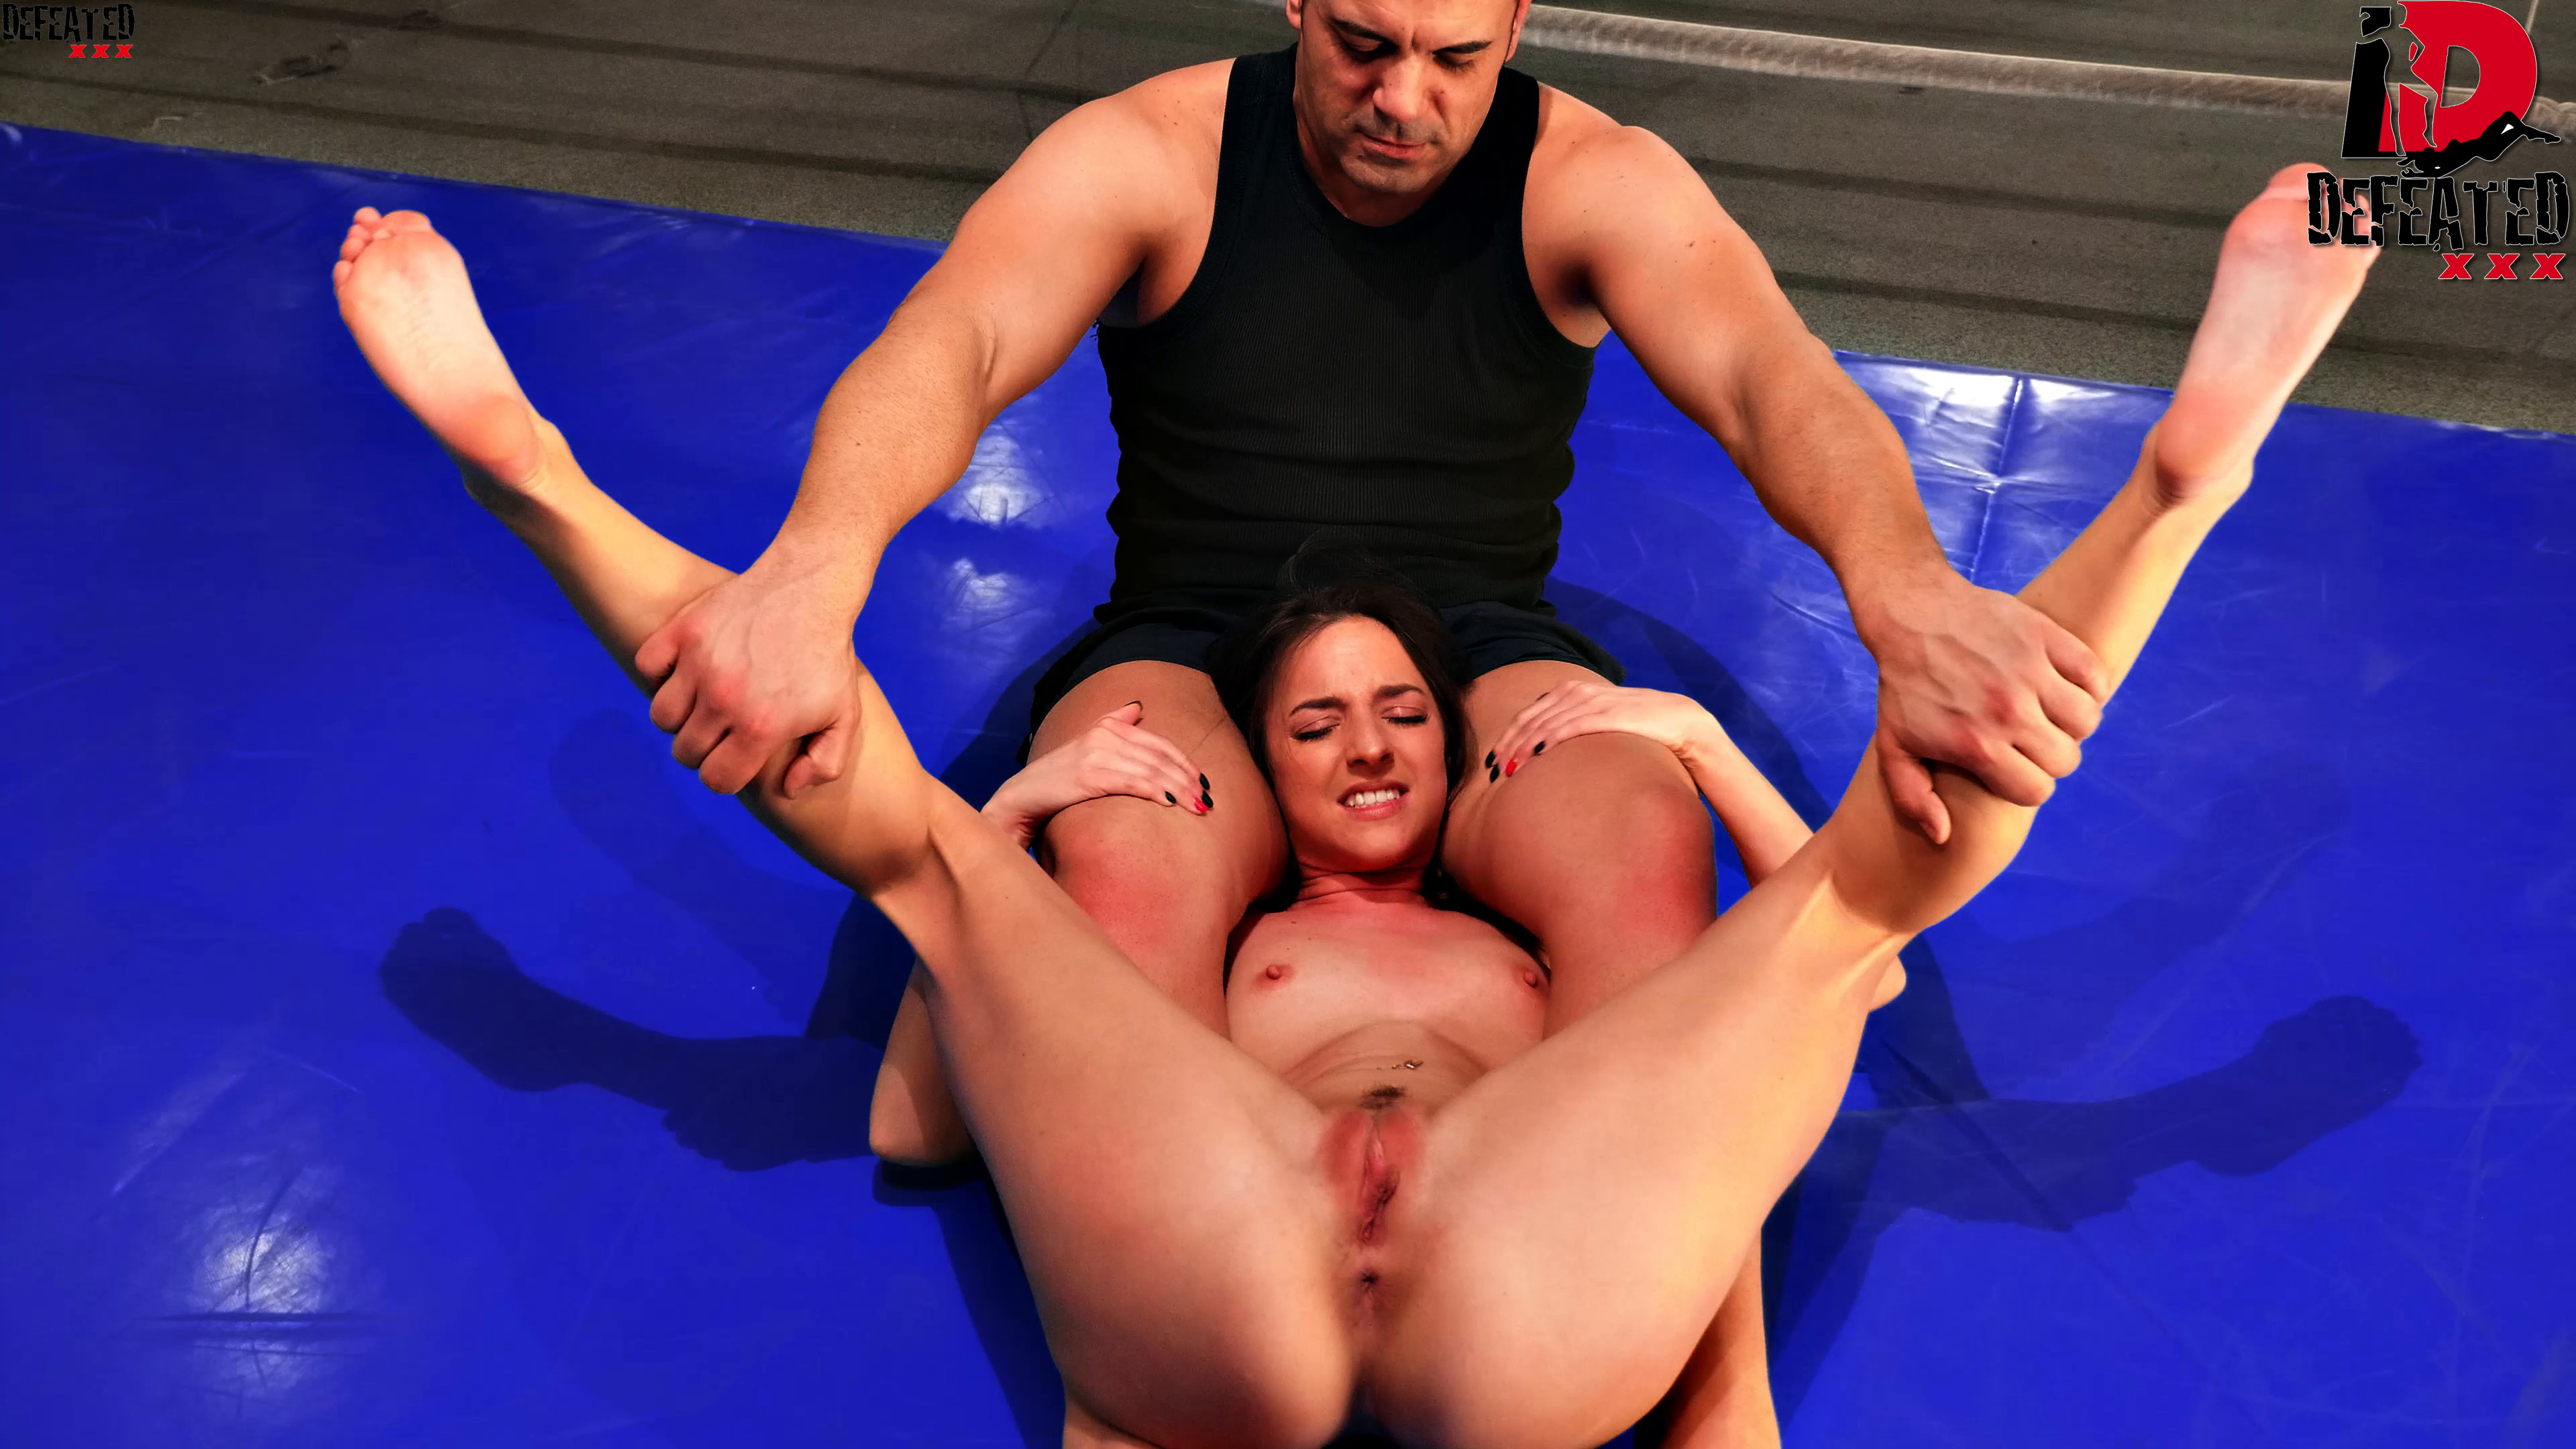 DEFEATED-MXD66---Amirah-Antonio-(100)